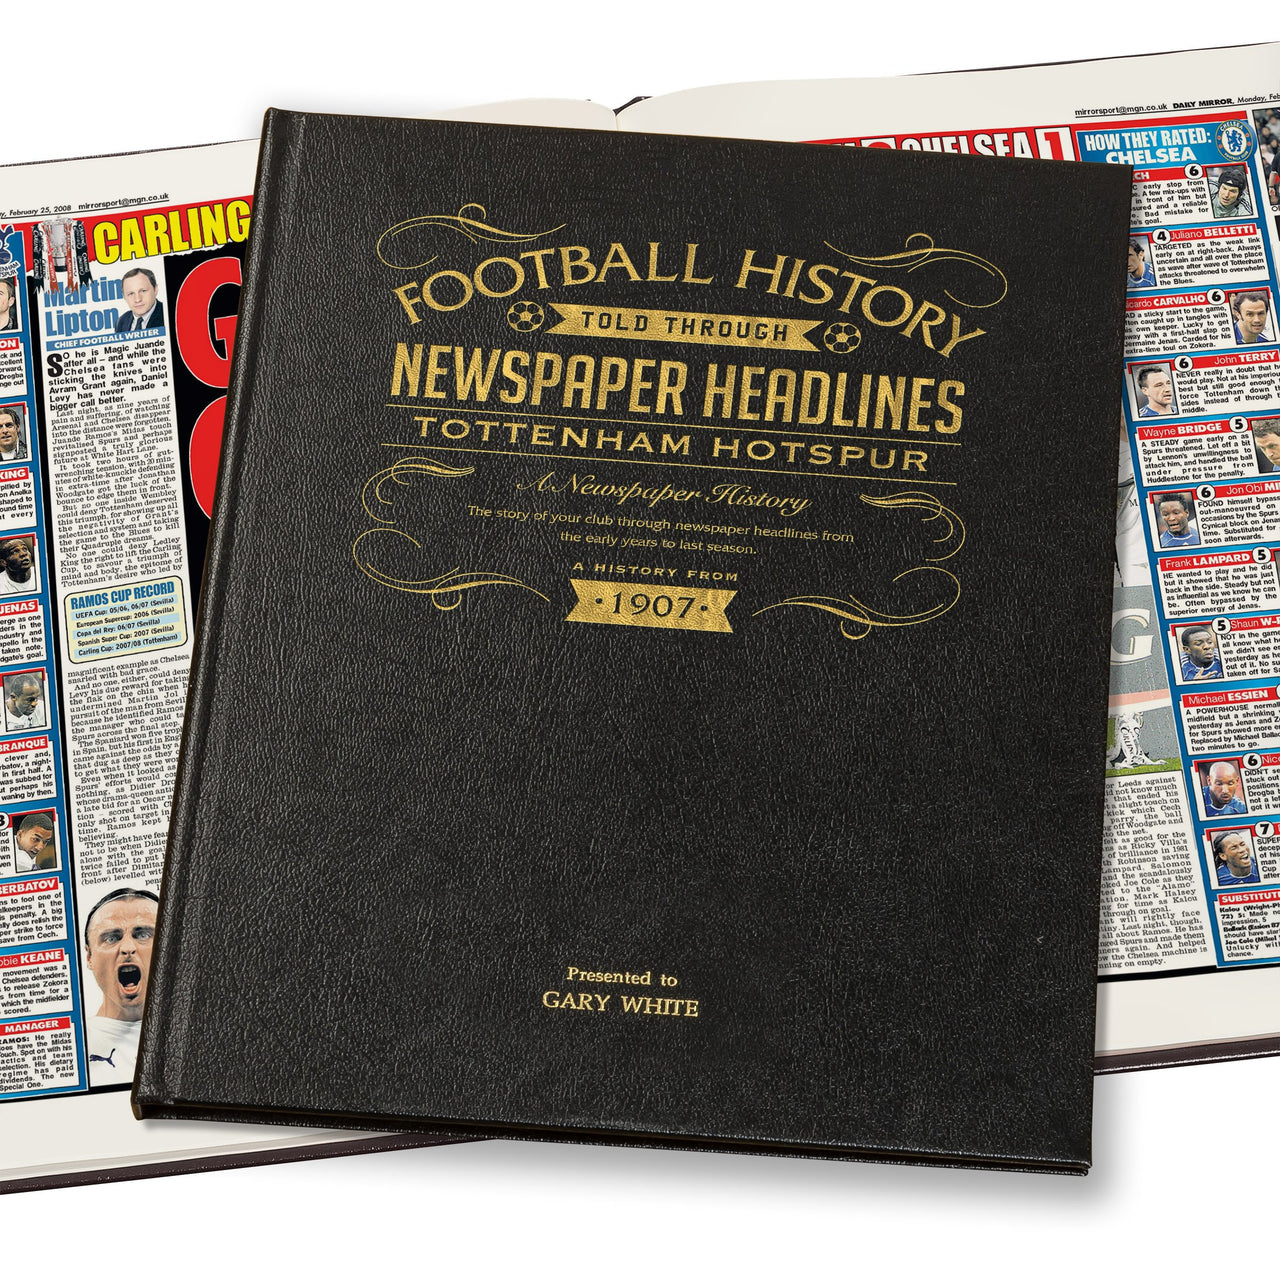 Tottenham Hotspur Newspaper Book - Leather Black Cover